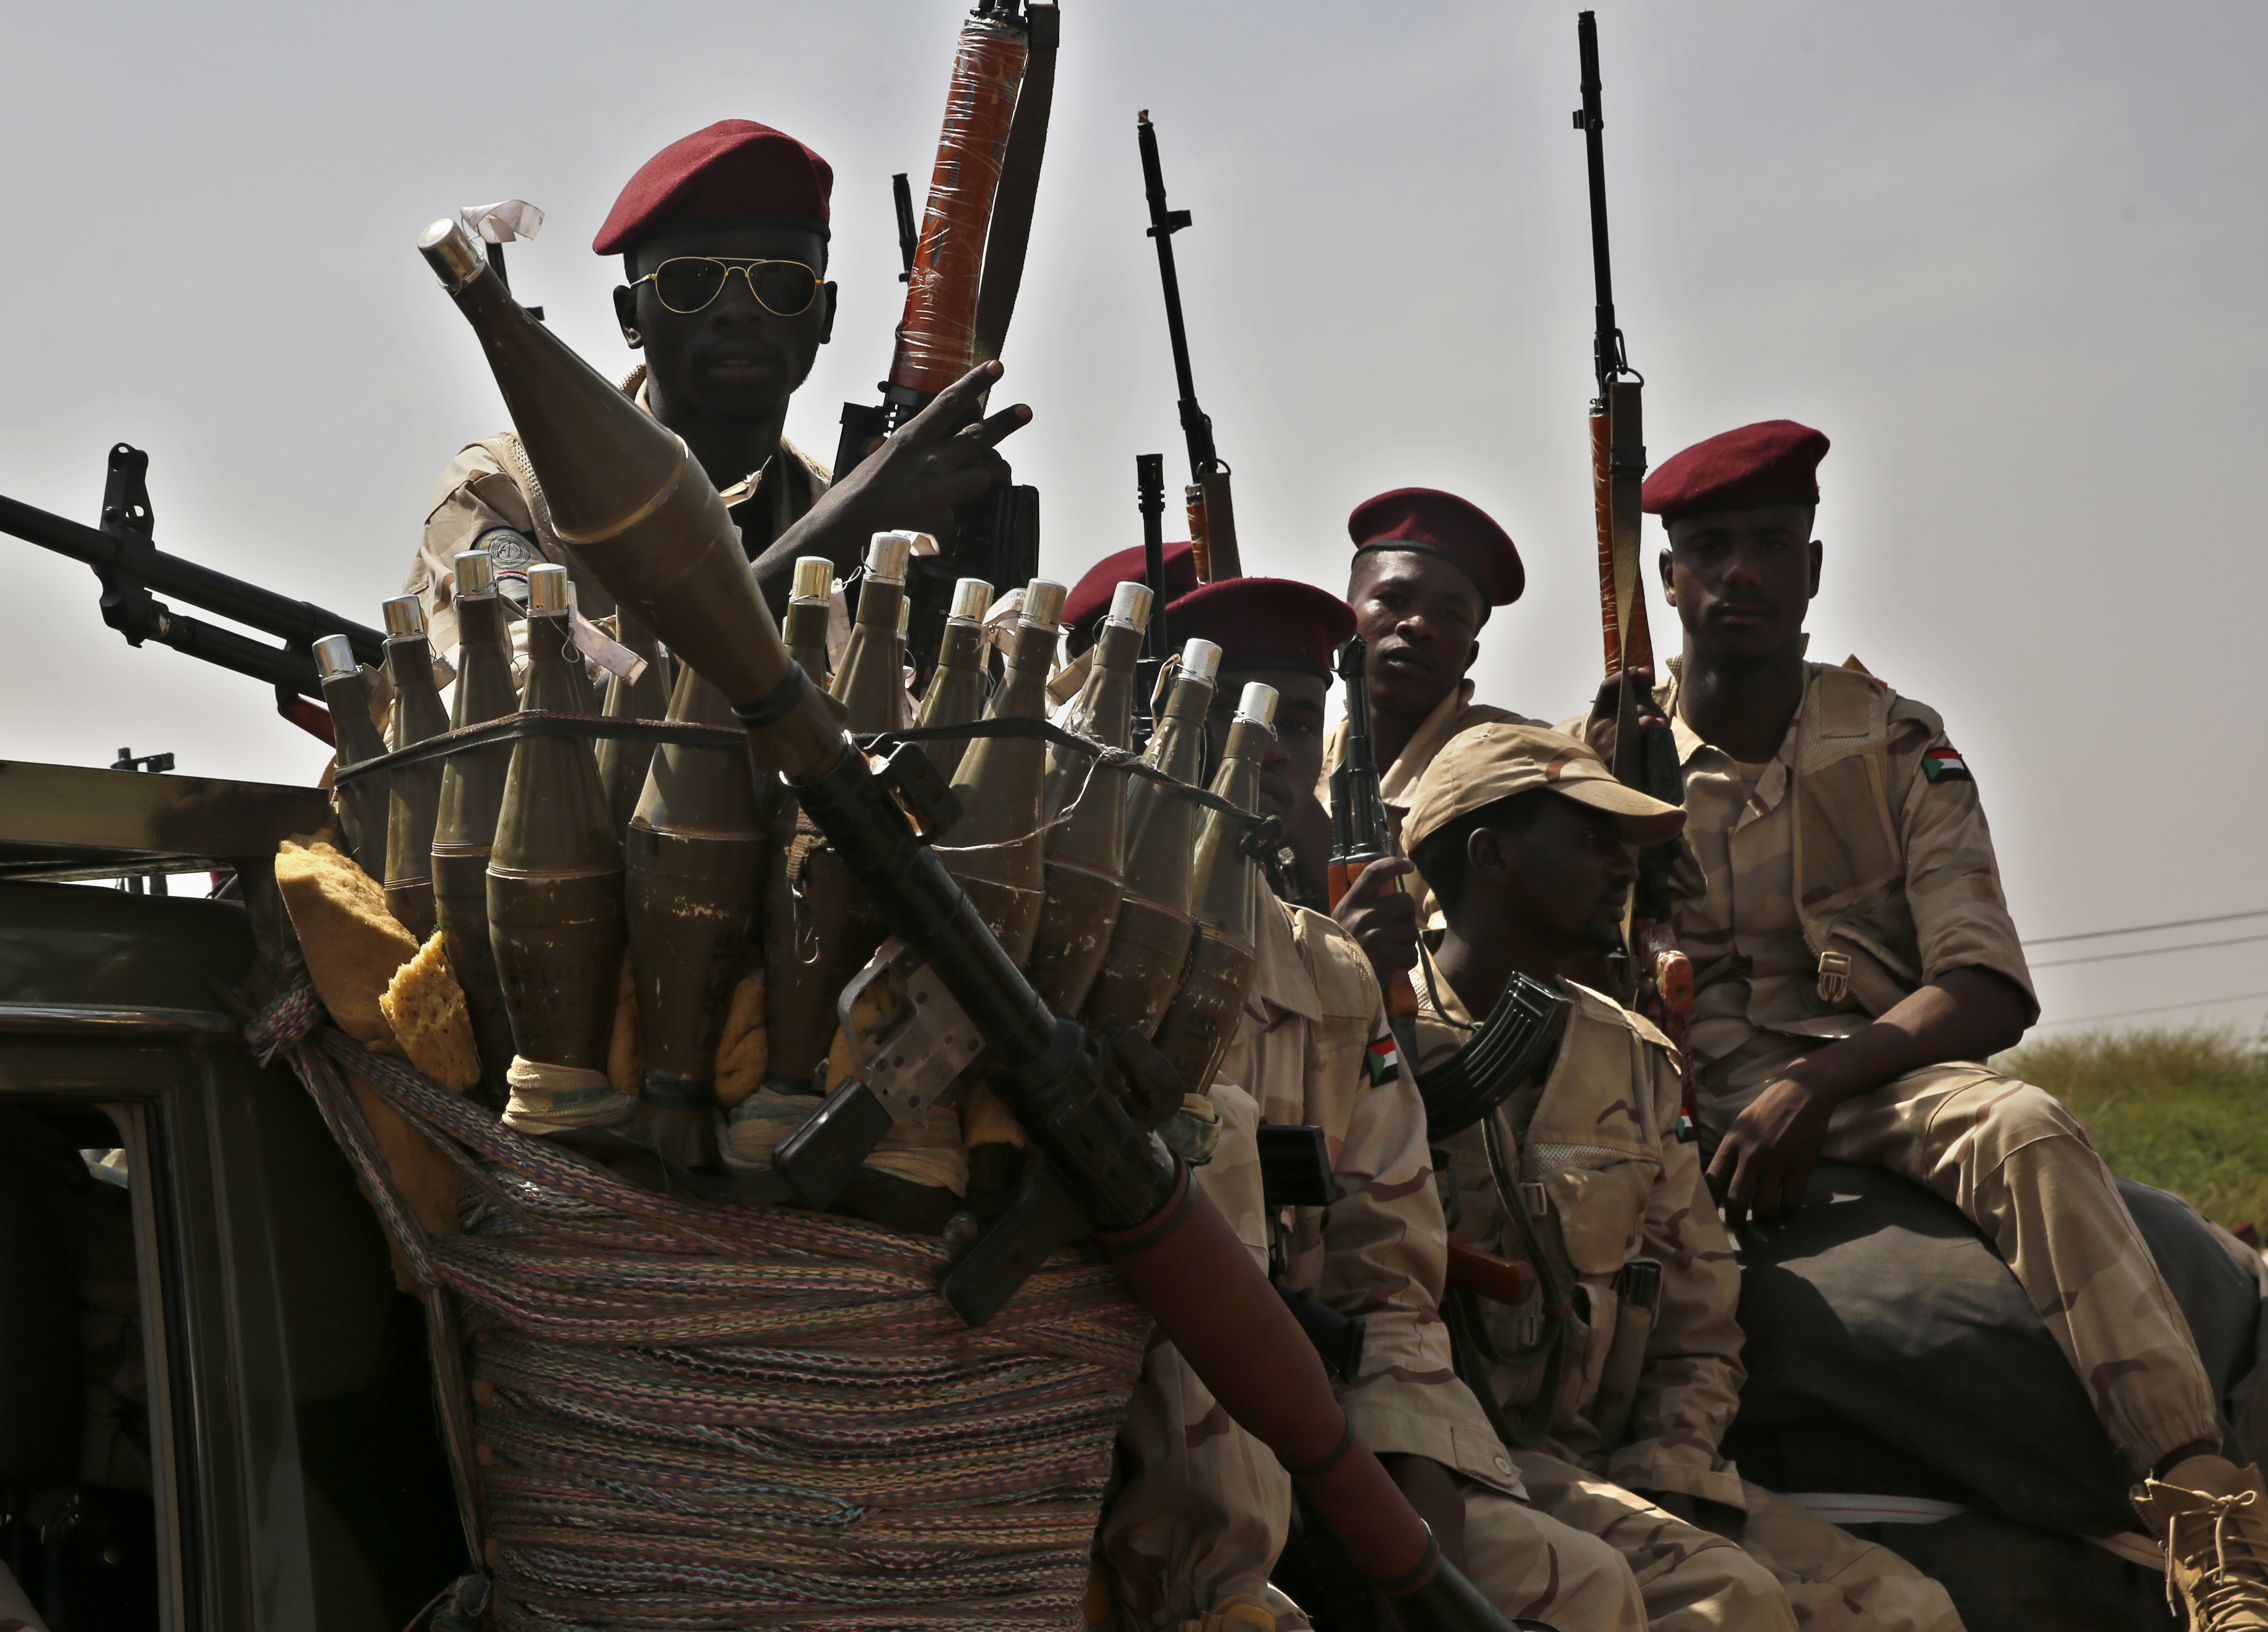 U.S. official says sanctions still an option in Sudan crisis